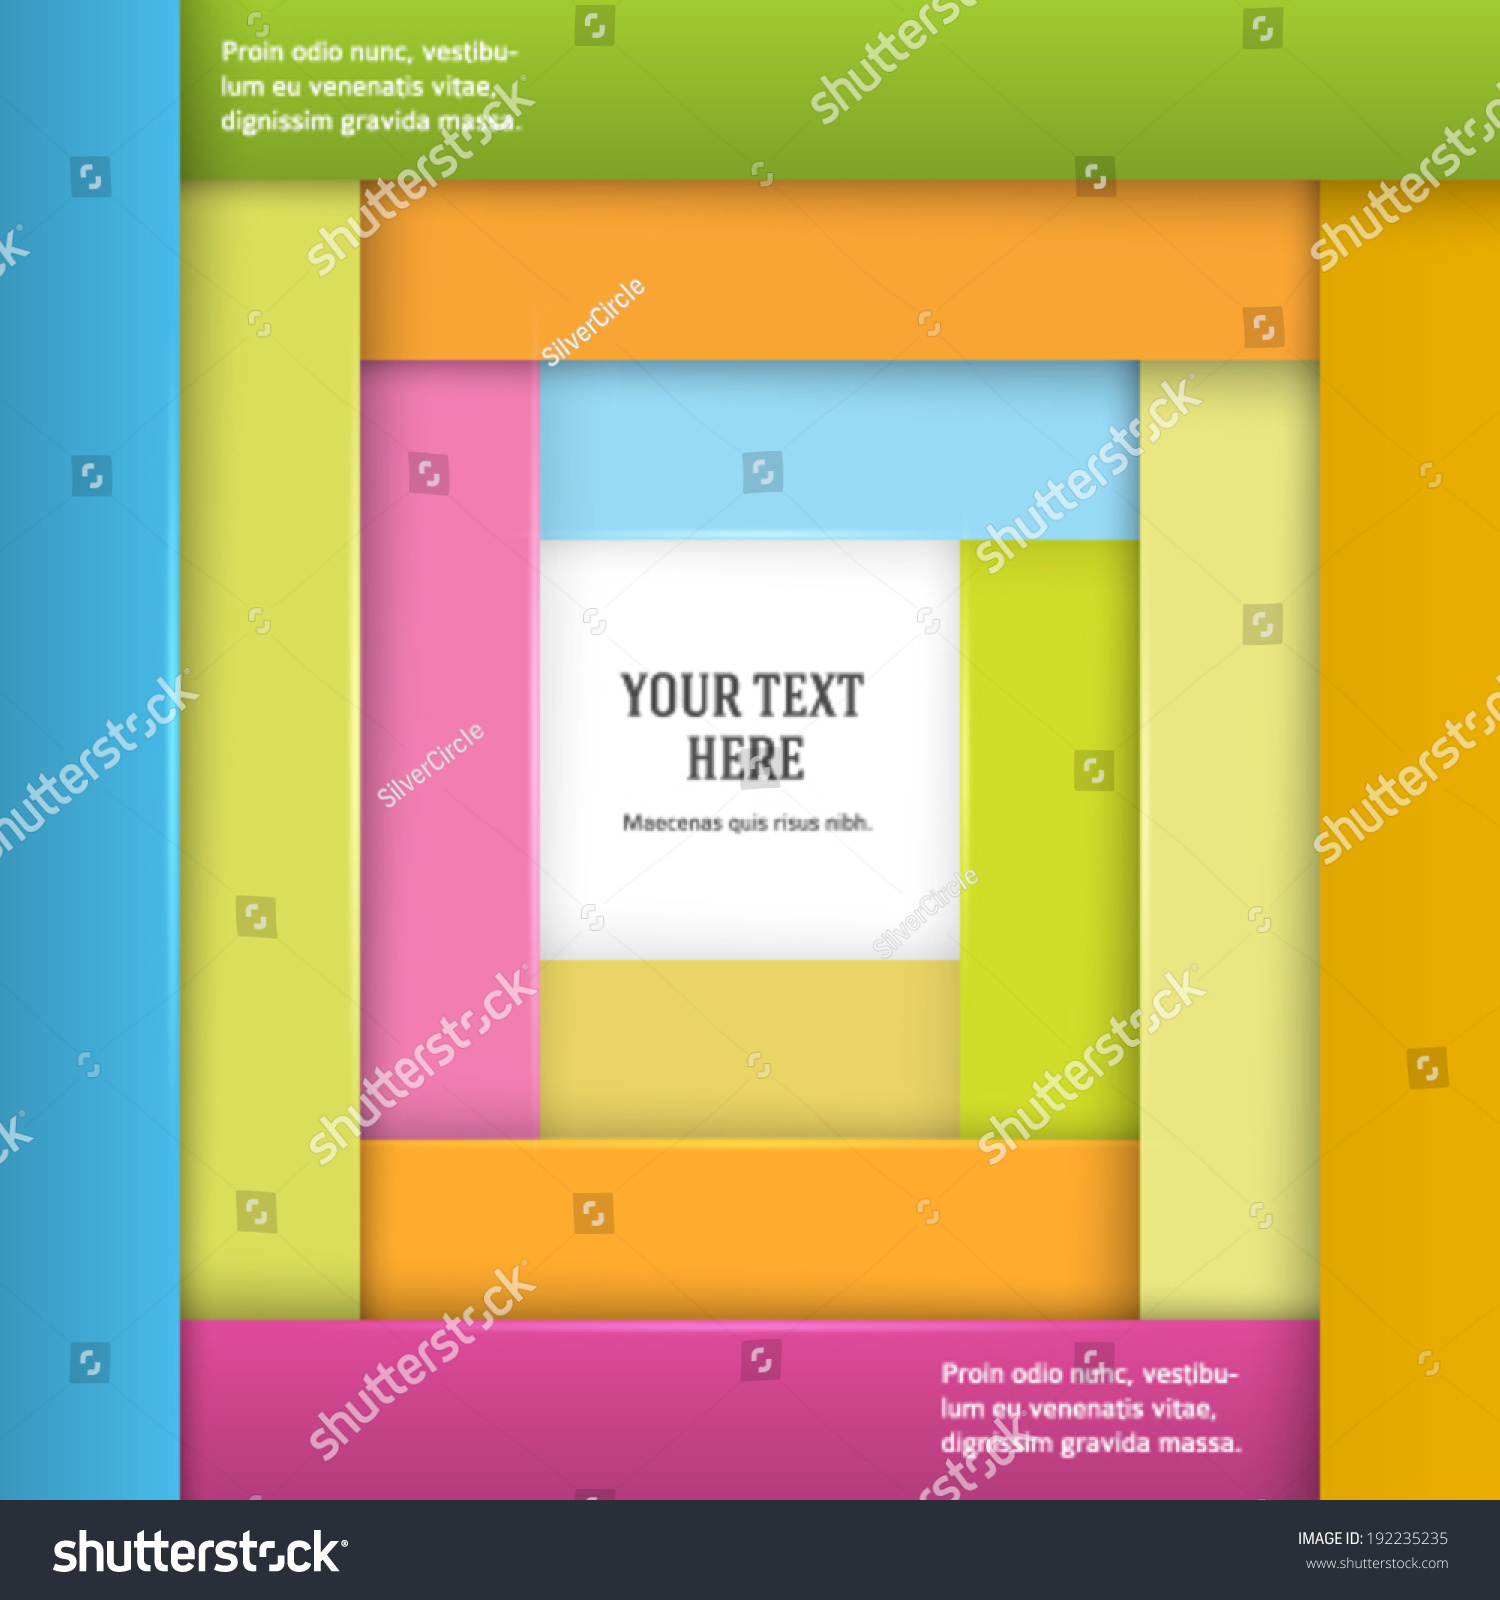 abstract geometric frame border background design stock vector abstract geometric frame border background design elements for cover page magazine business flyer or